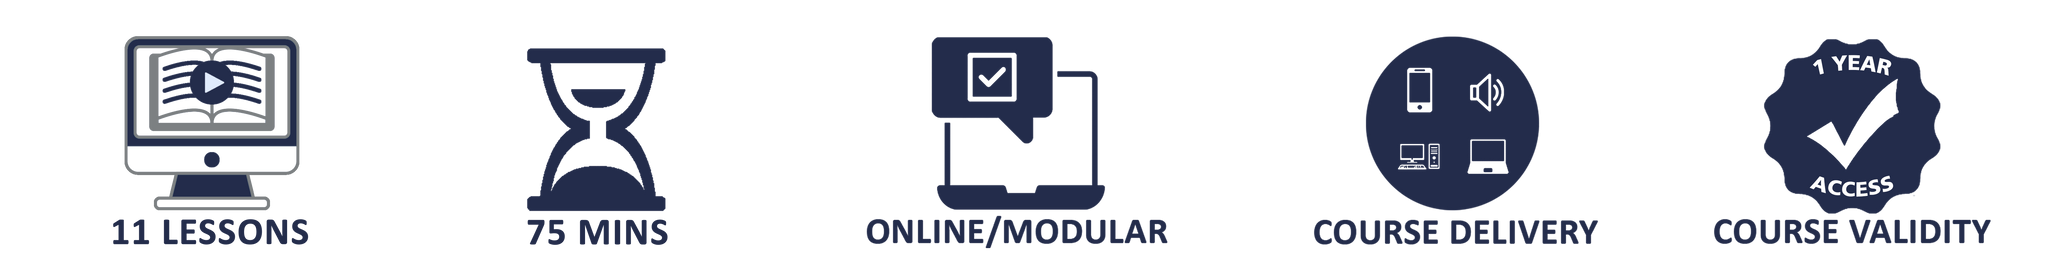 SQL for Non-Technical Users - Online Training Course - The Mandatory Training Group UK -